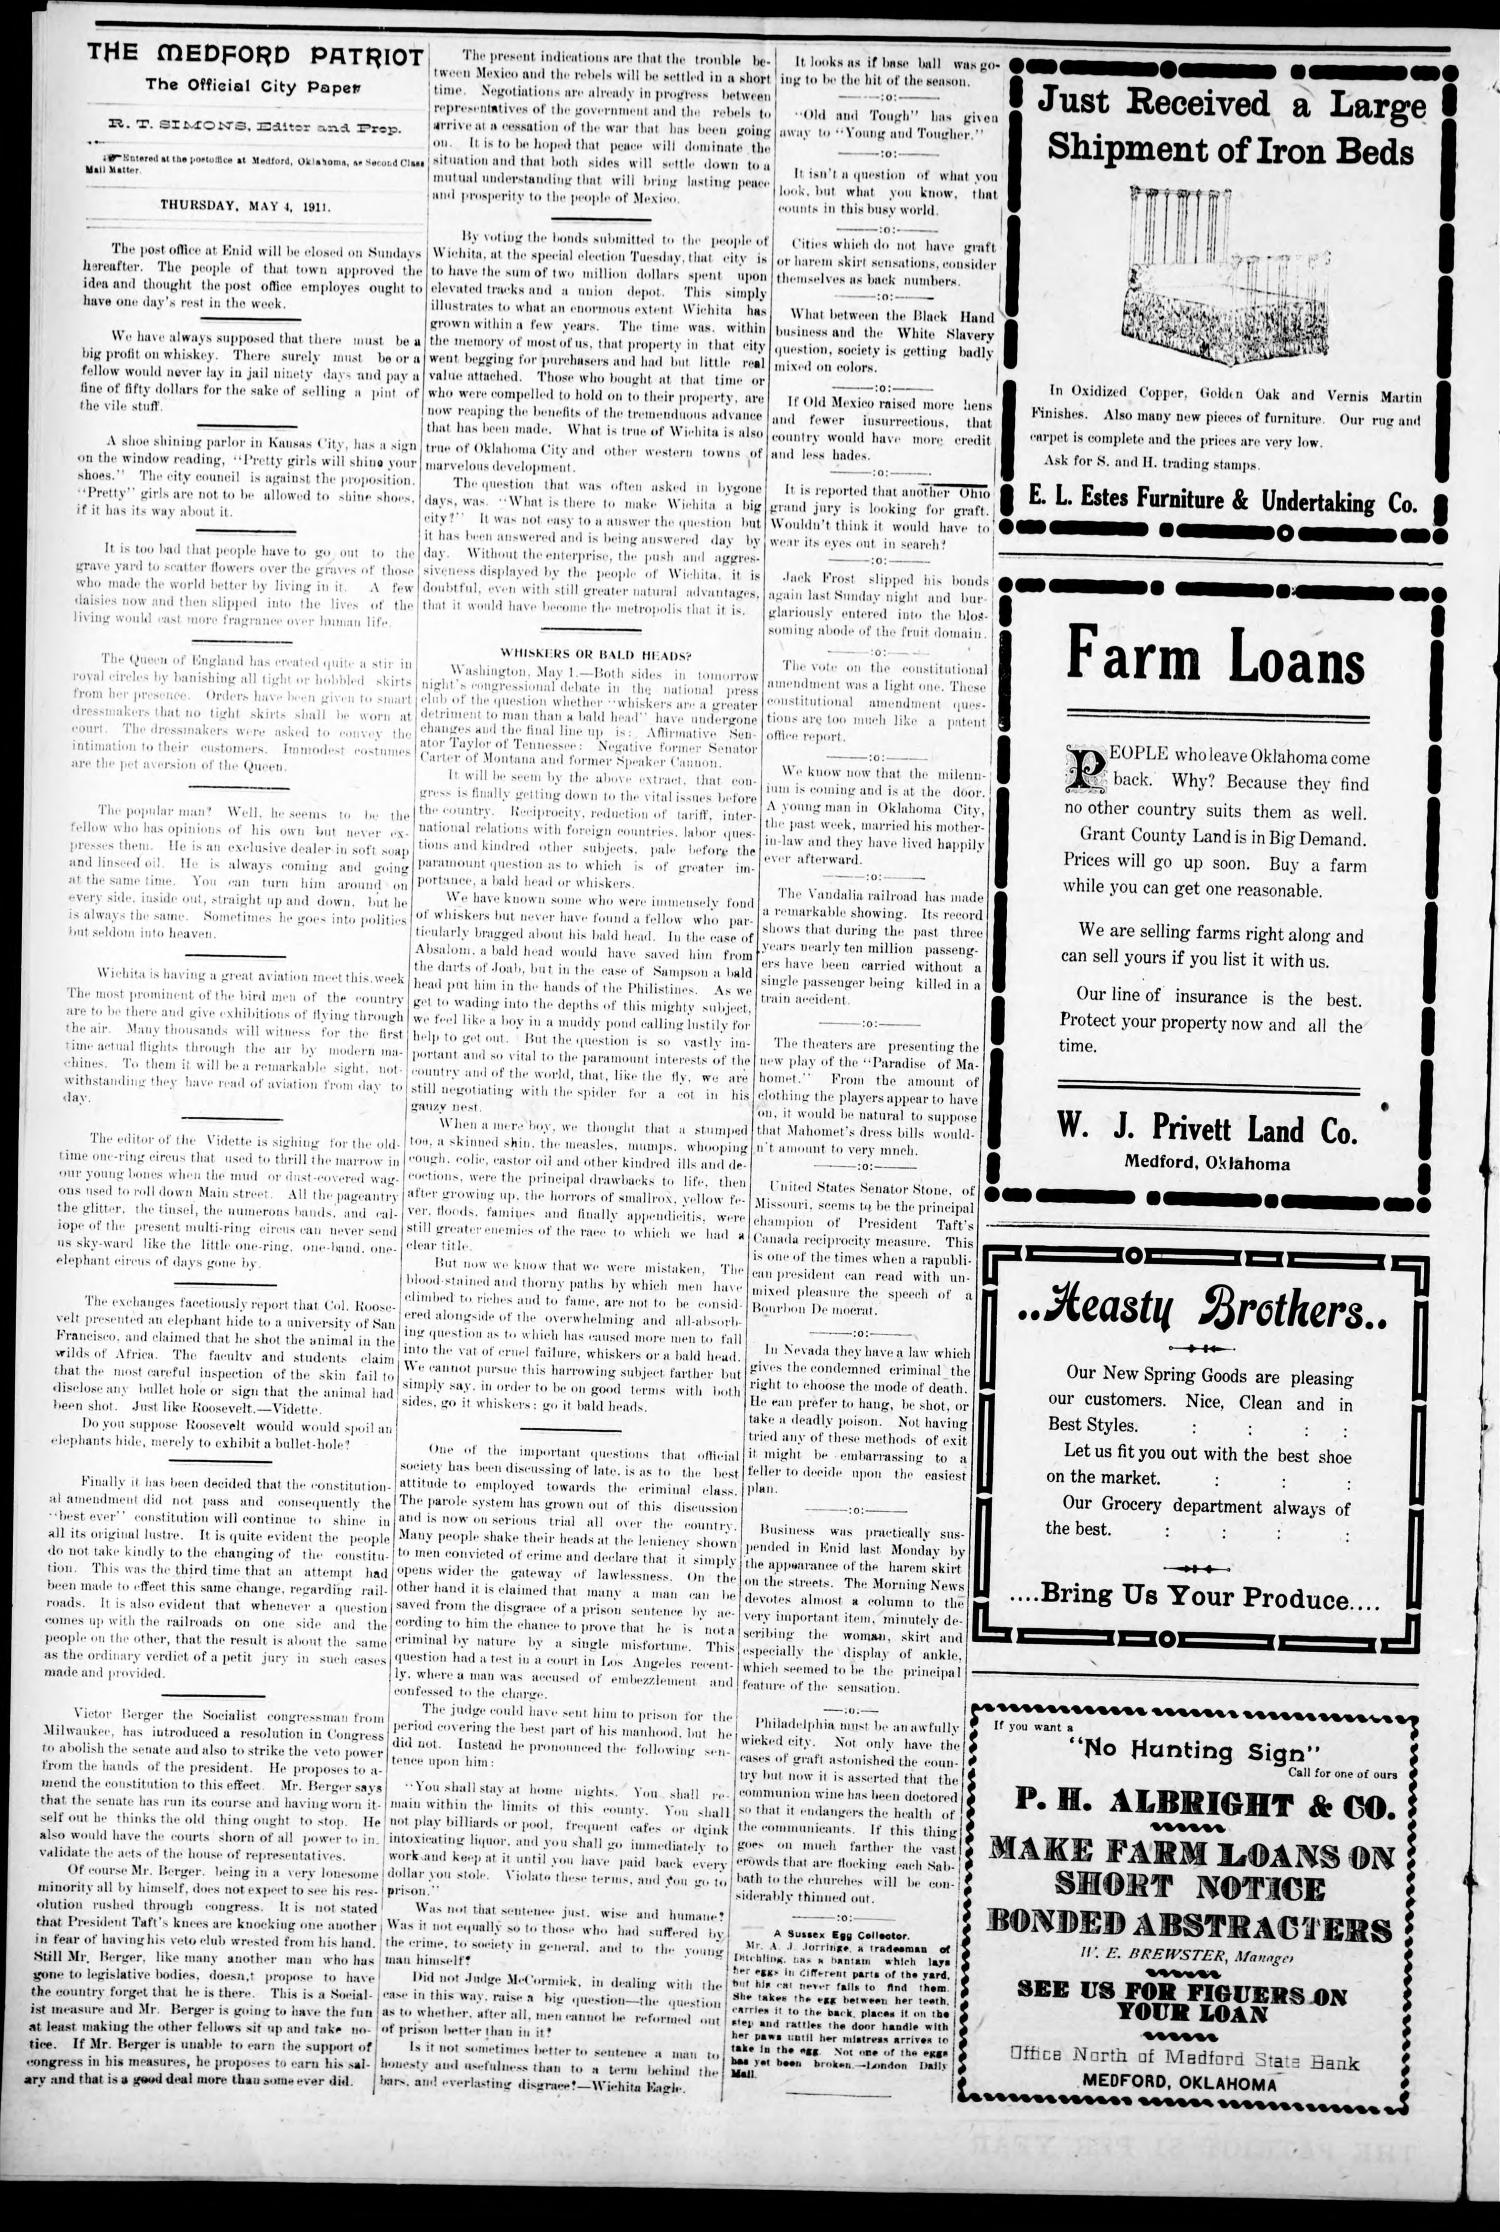 The Medford Patriot. (Medford, Okla.), Vol. 18, No. 30, Ed. 1 Thursday, May 4, 1911                                                                                                      [Sequence #]: 4 of 8